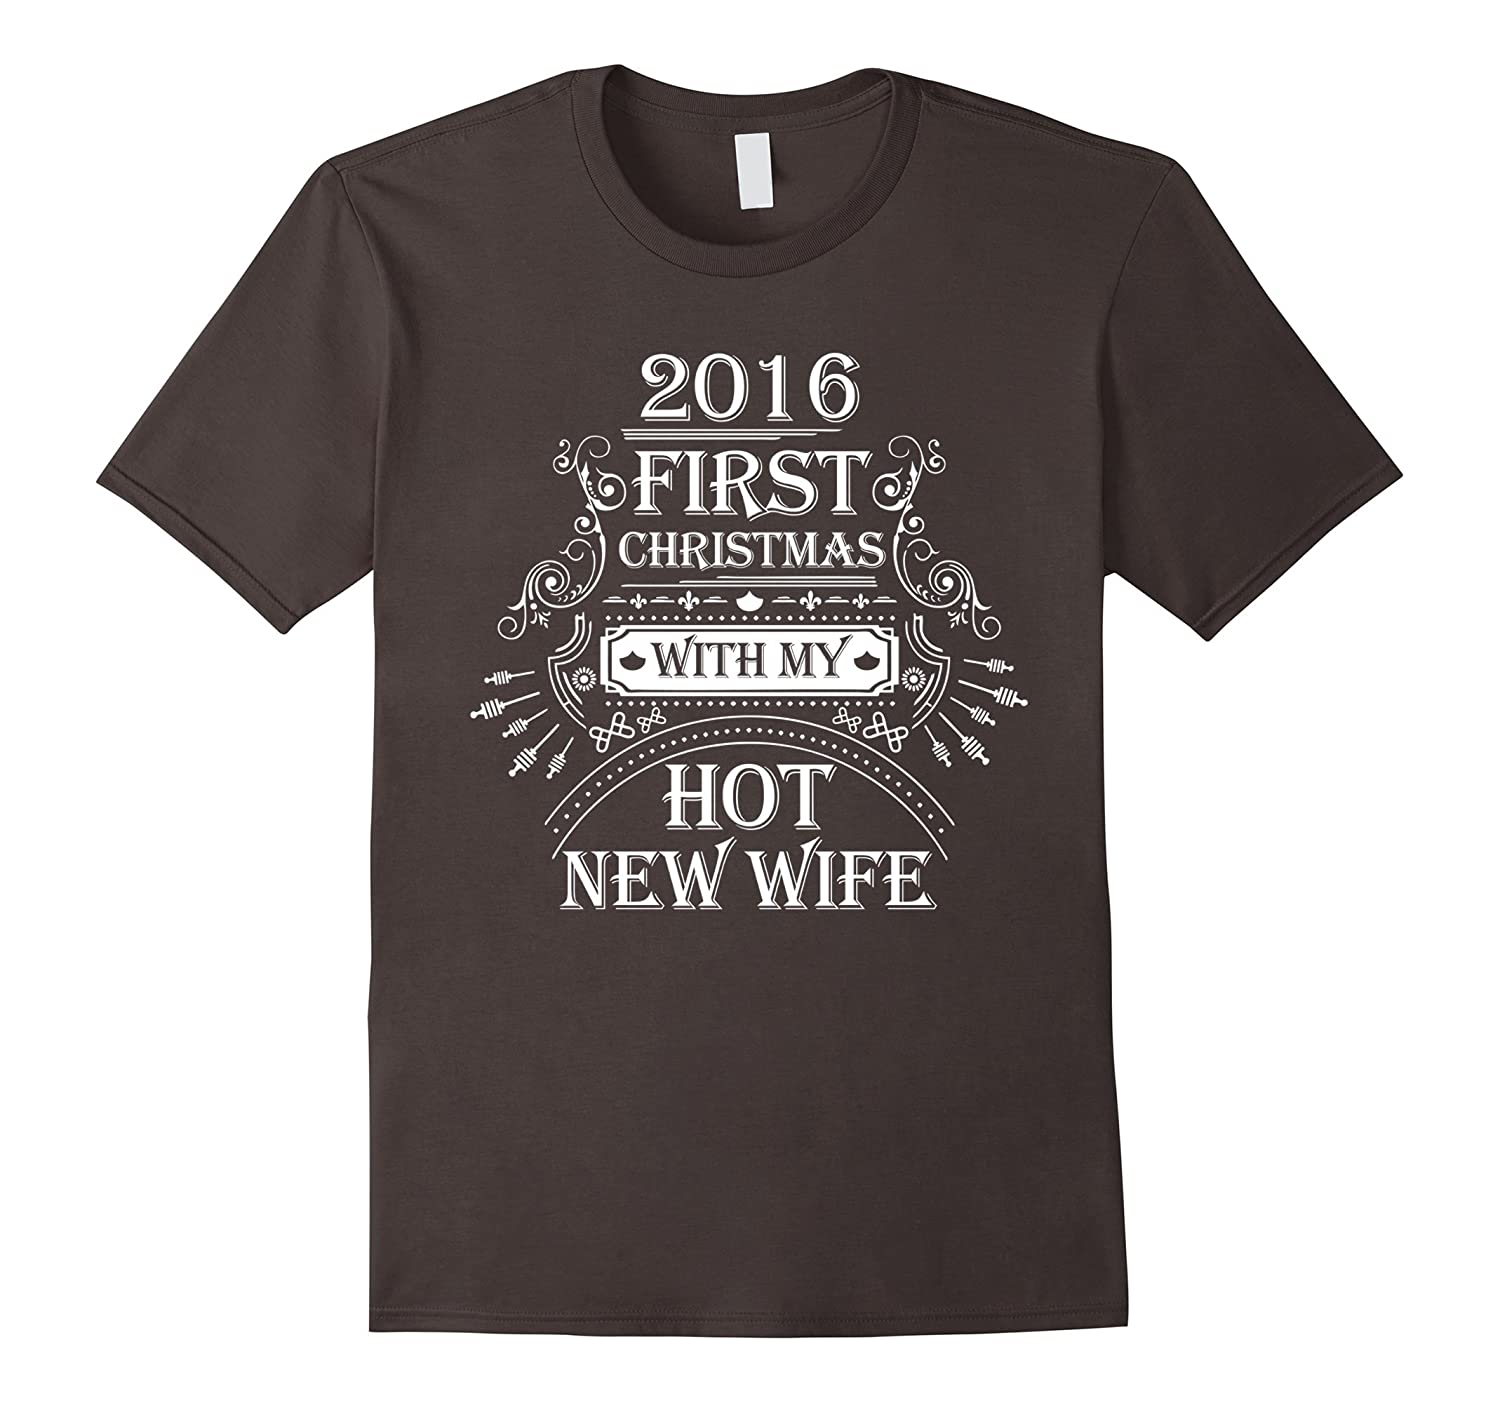 2016 First Christmas With My Hot New Wife T-Shirt